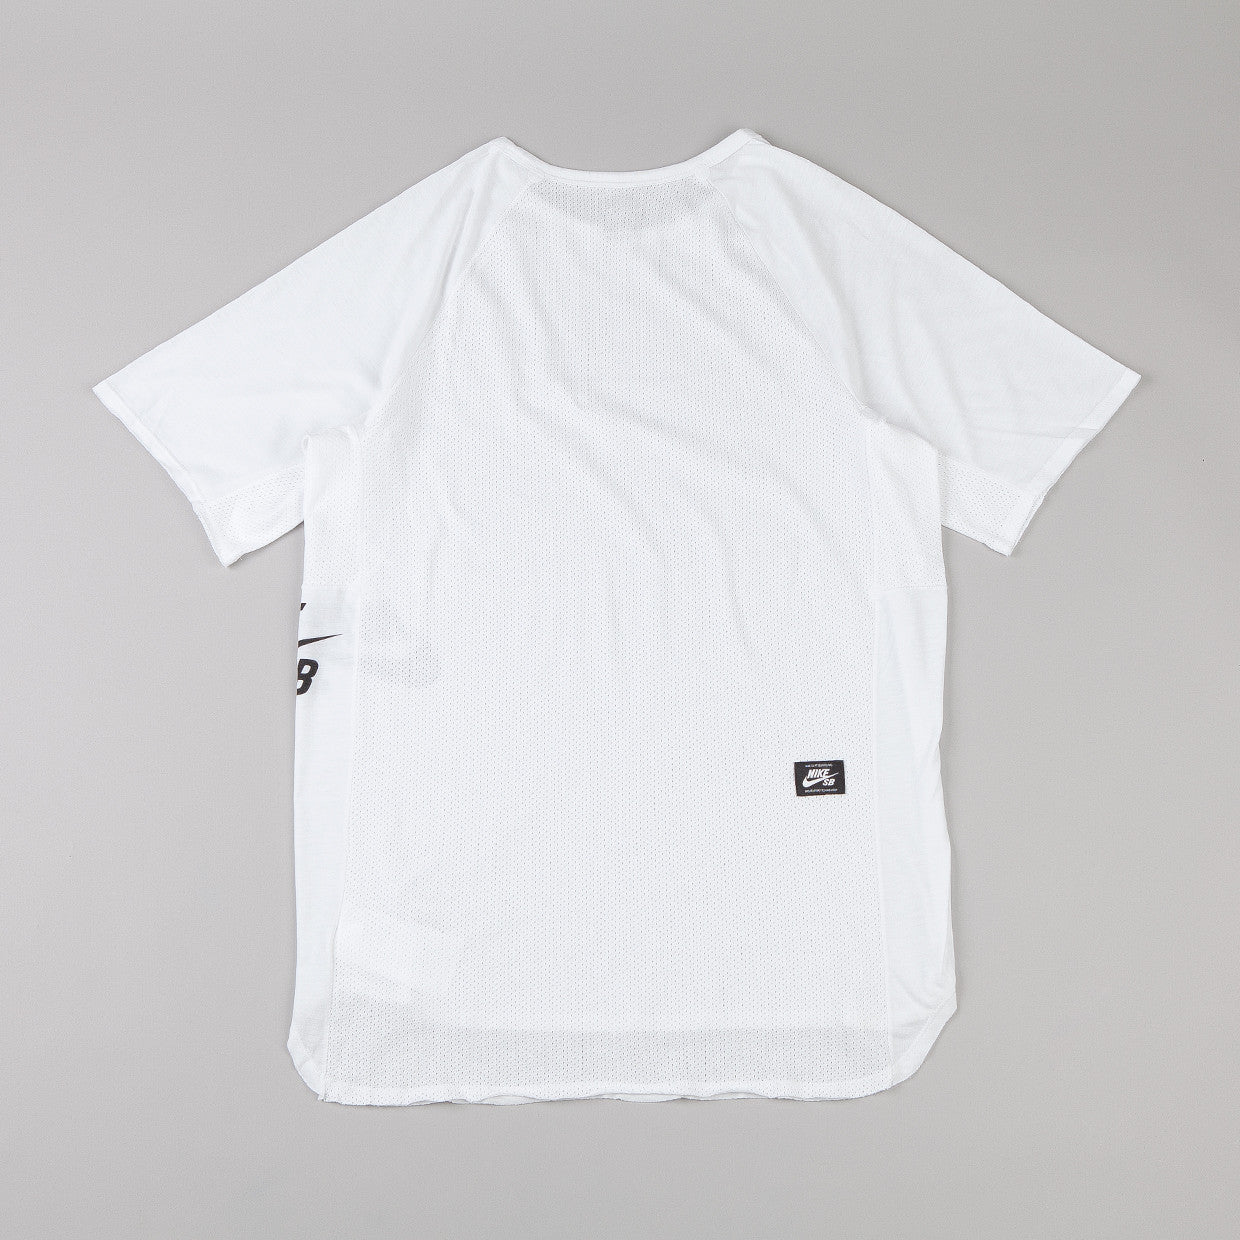 Nike Sb Dri-fit Skyline T-Shirt  - White / Black